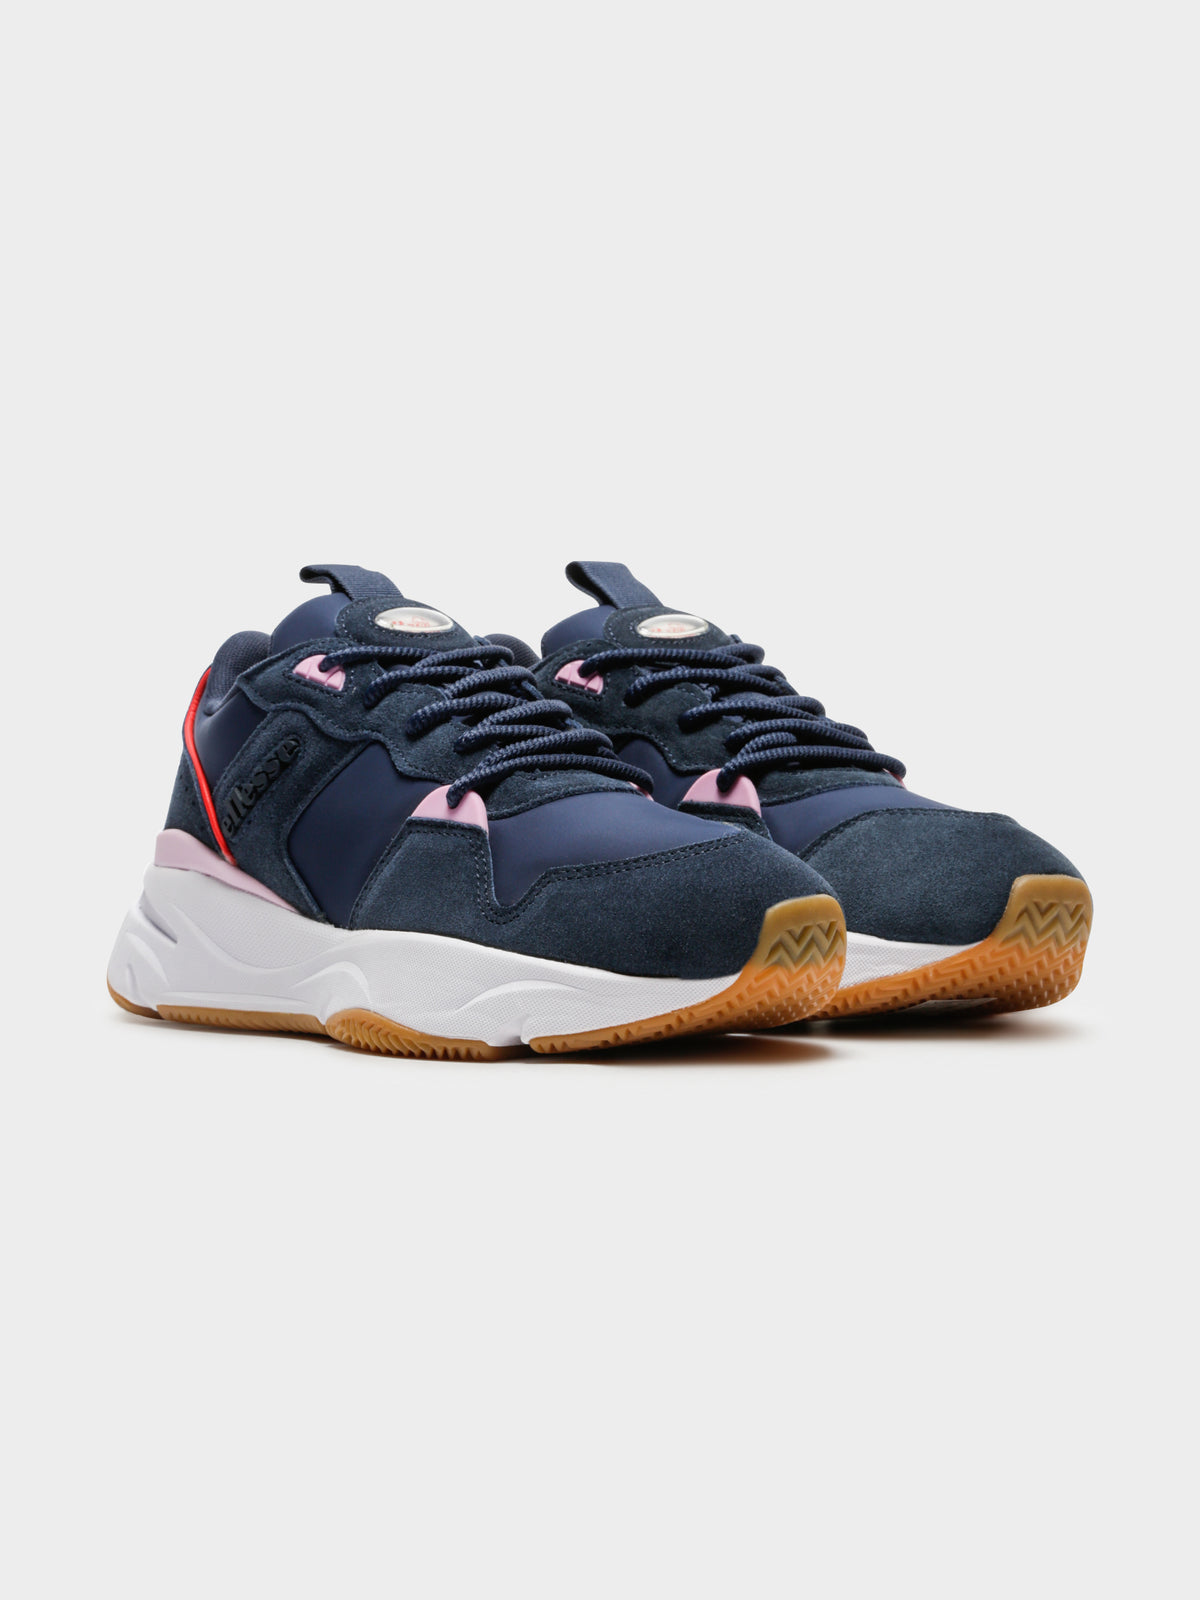 Unisex Aspio Sneakers in Dress Blue